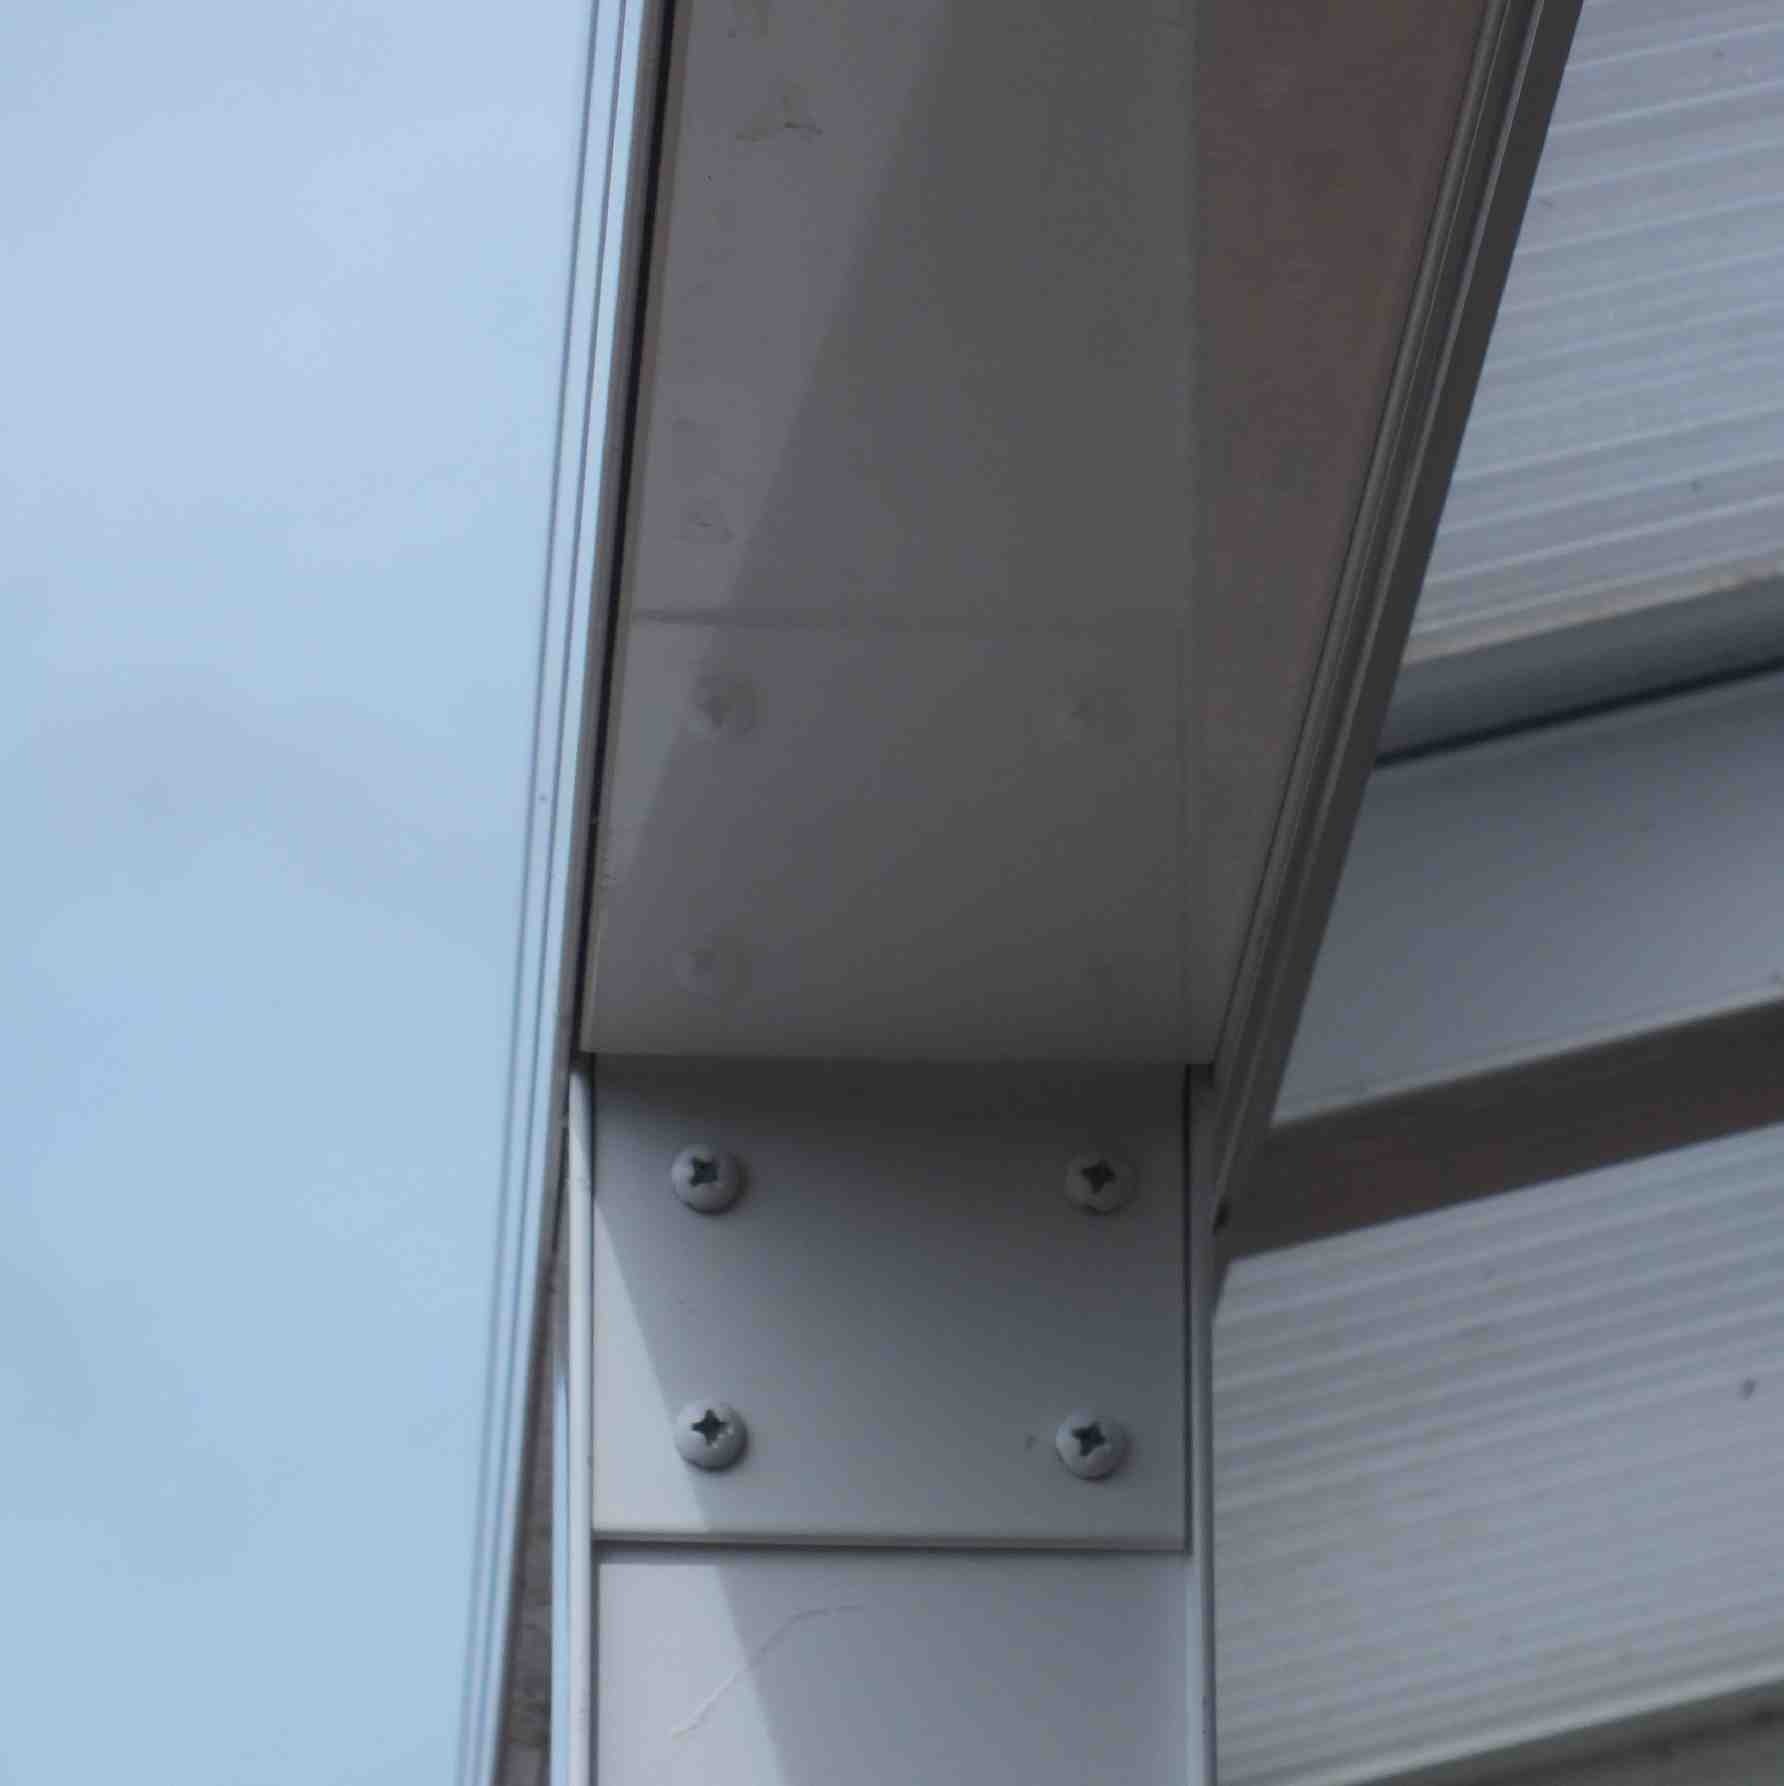 Affordable Omega Verandah with 16mm Polycarbonate Glazing - 6.3m (W) x 3.5m (P), (4) Supporting Posts